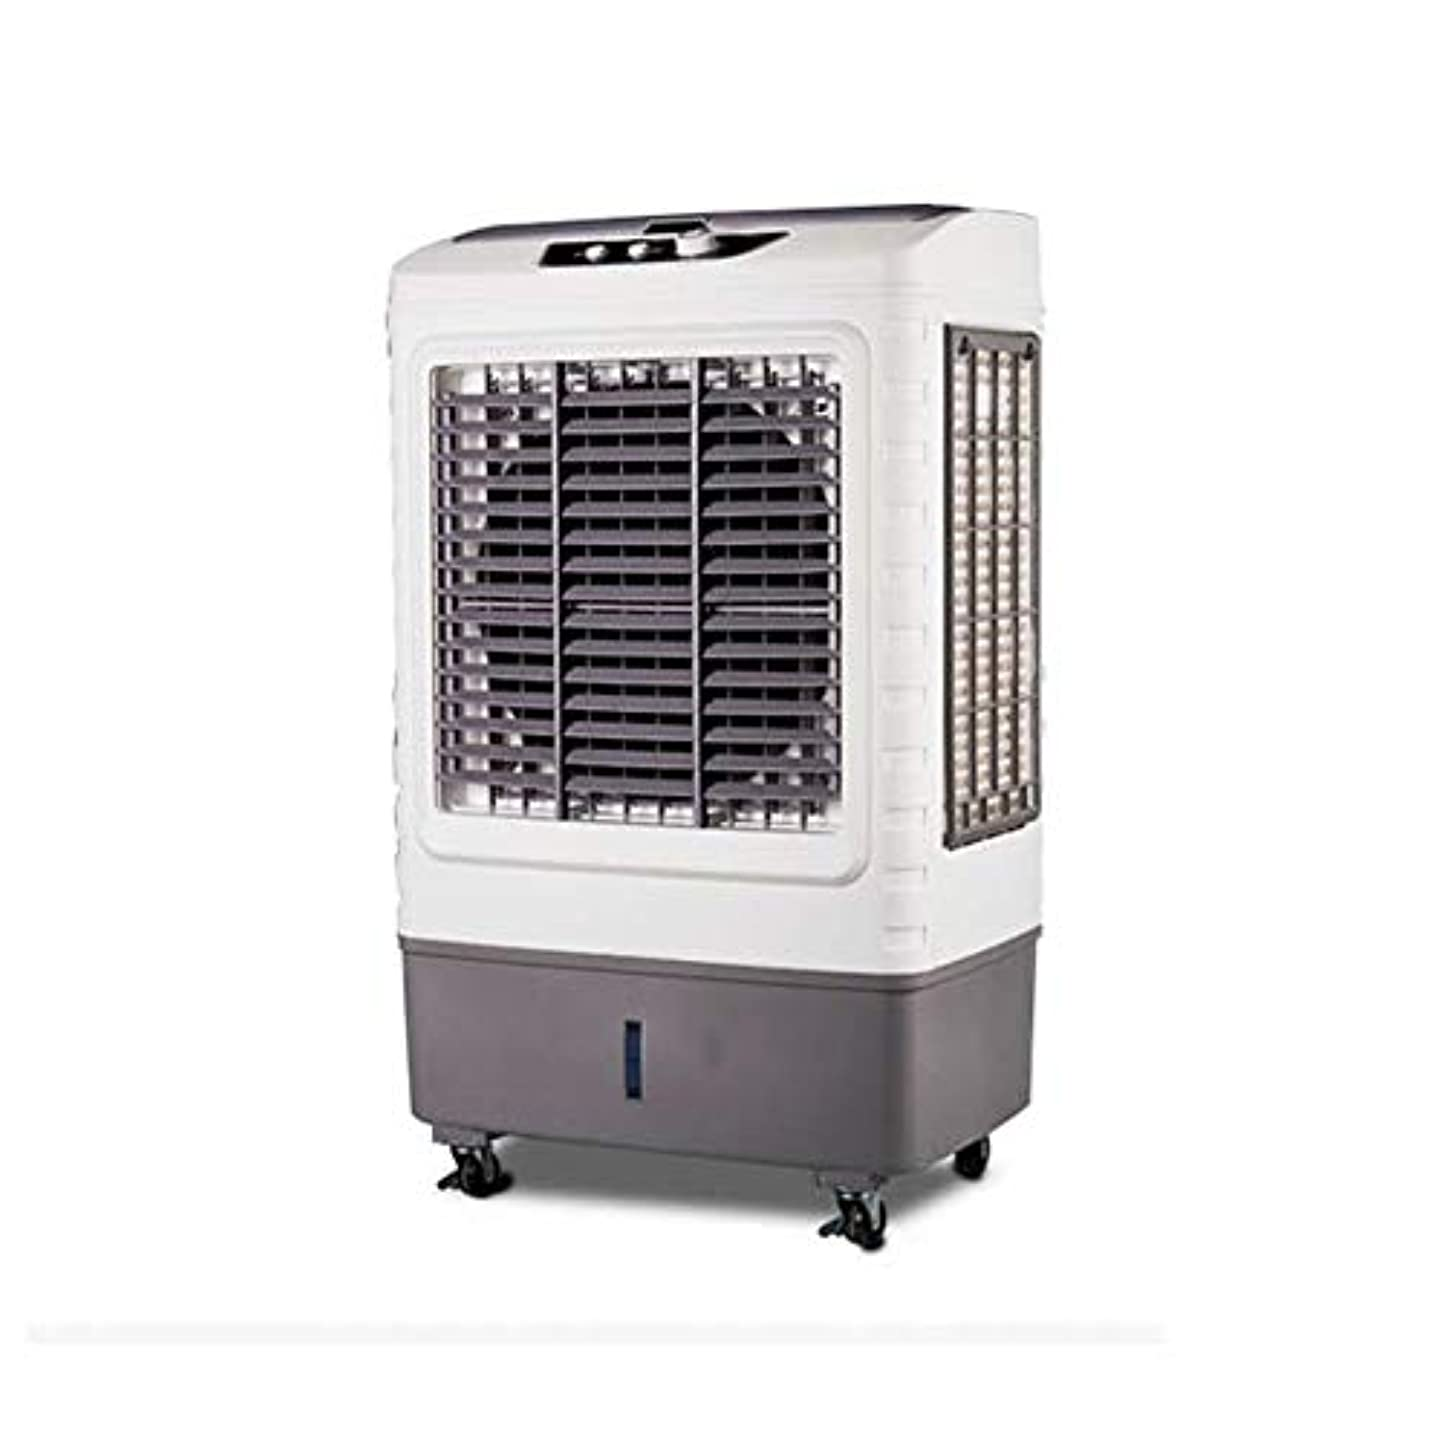 Xxyk Household air Cooler Evaporative Coolers Air Conditioner Mobile Air-Conditioning Fan Water Cooling Fan Industrial Commercial Small Air Conditioner (Size : A) jdgvdudlflx2